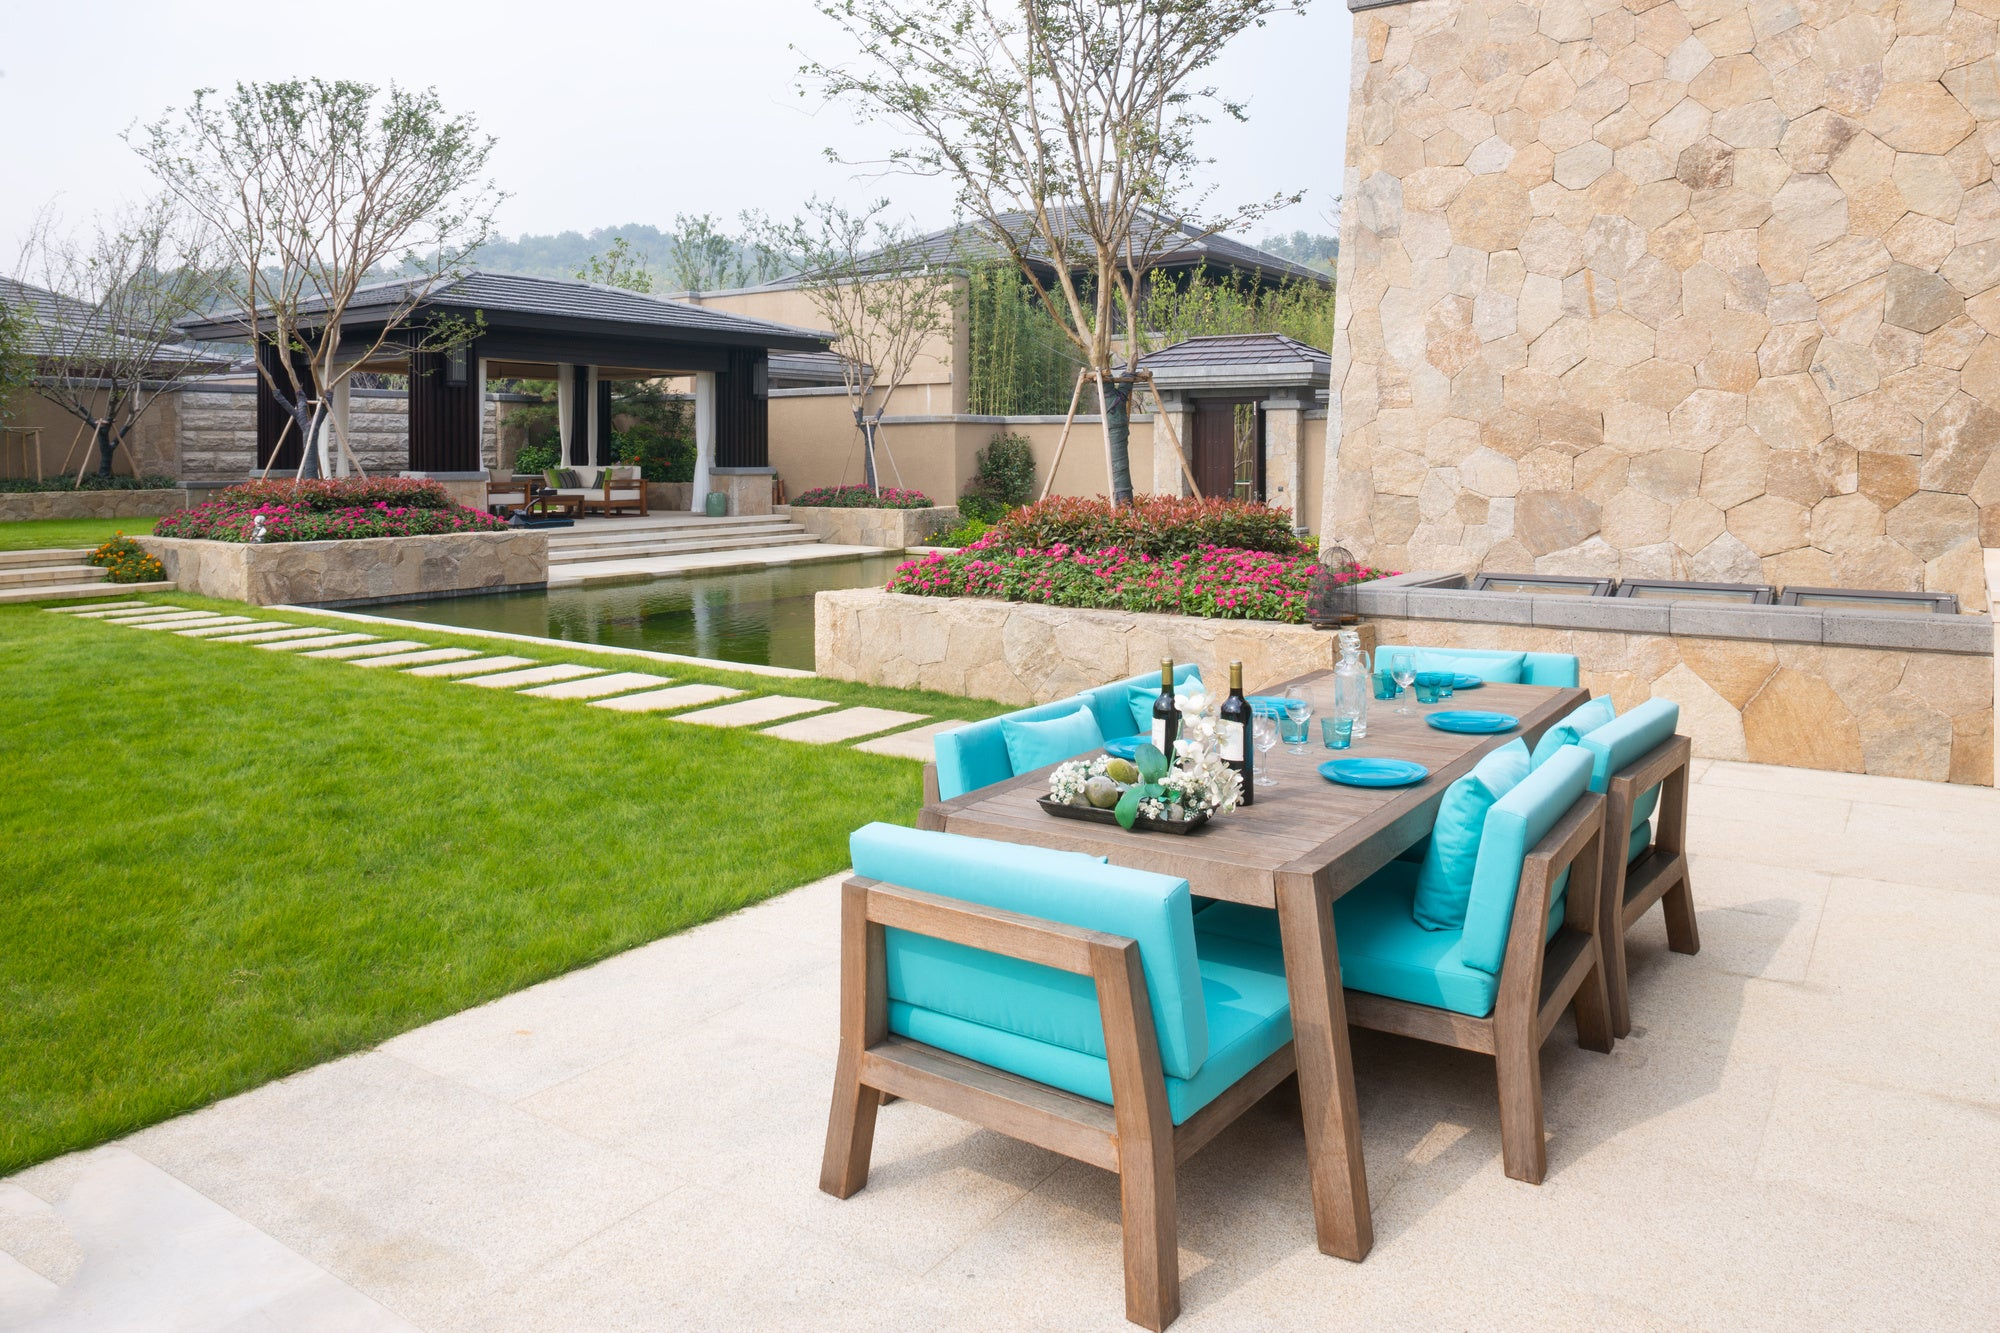 4 Tips for Cleaning and Maintaining Outdoor Dining Sets